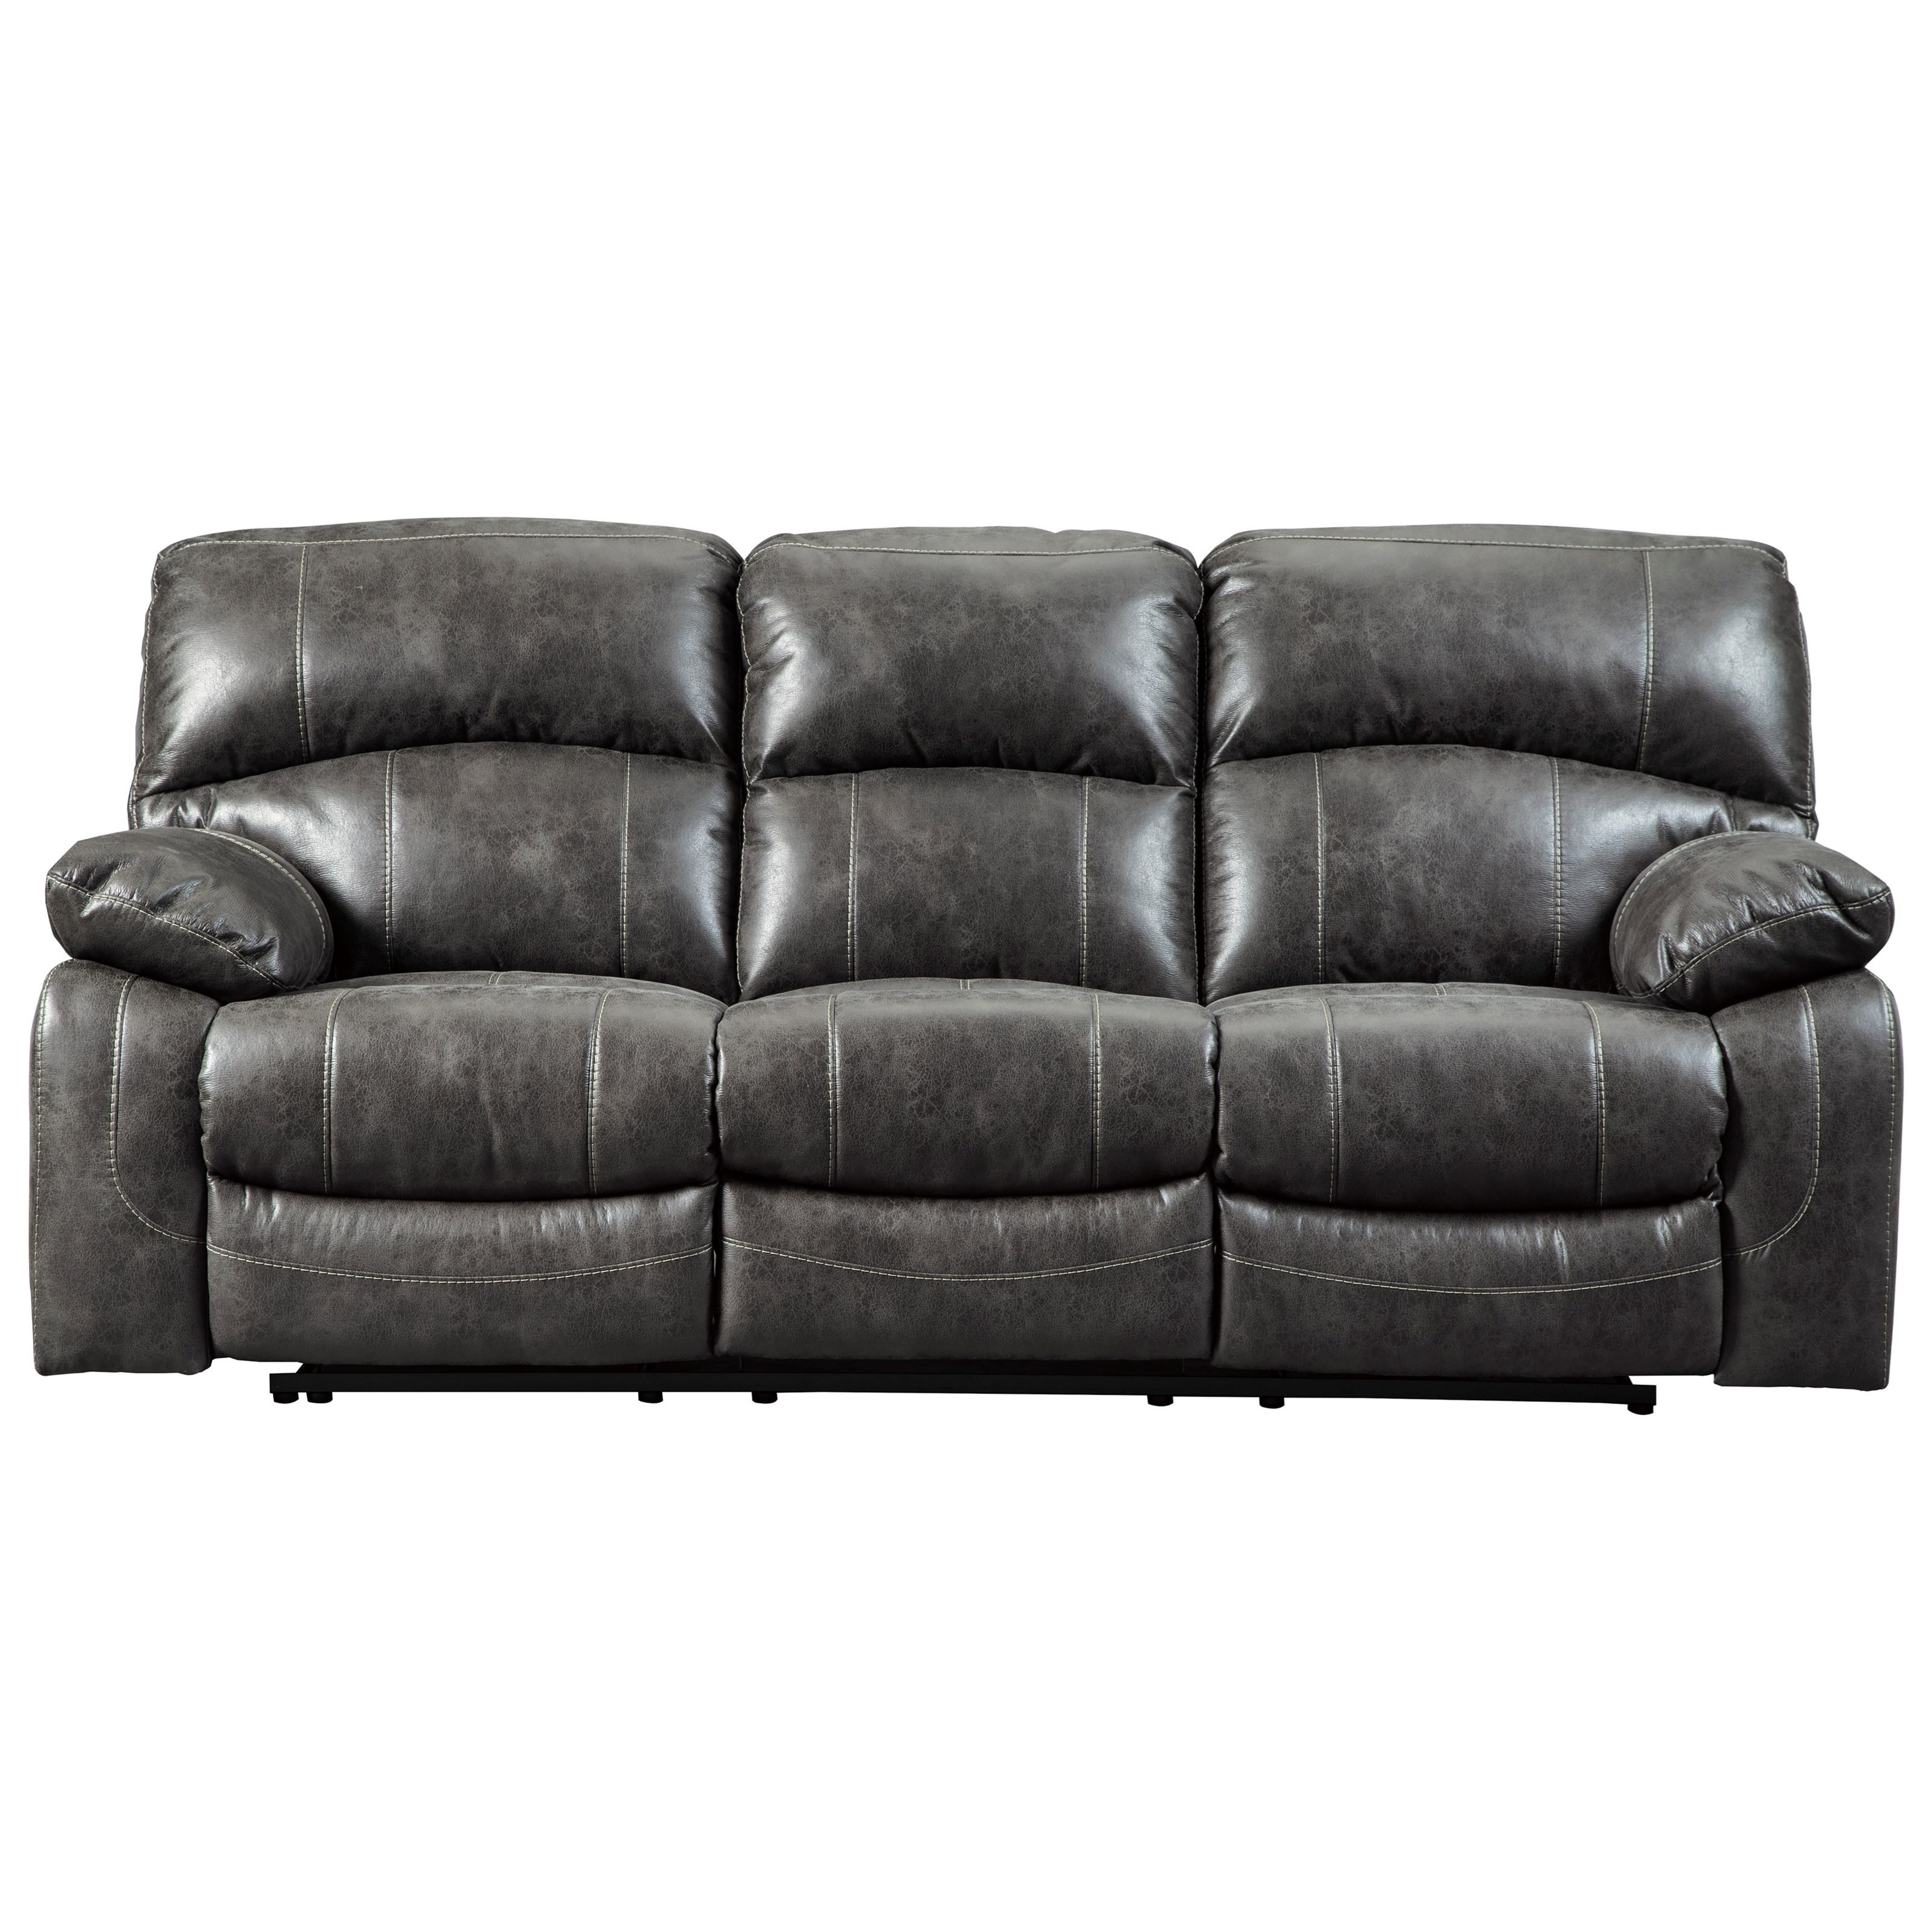 Dunwell Power Reclining Sofa w/ Adjustable Headrests by Signature Design by Ashley at Northeast Factory Direct